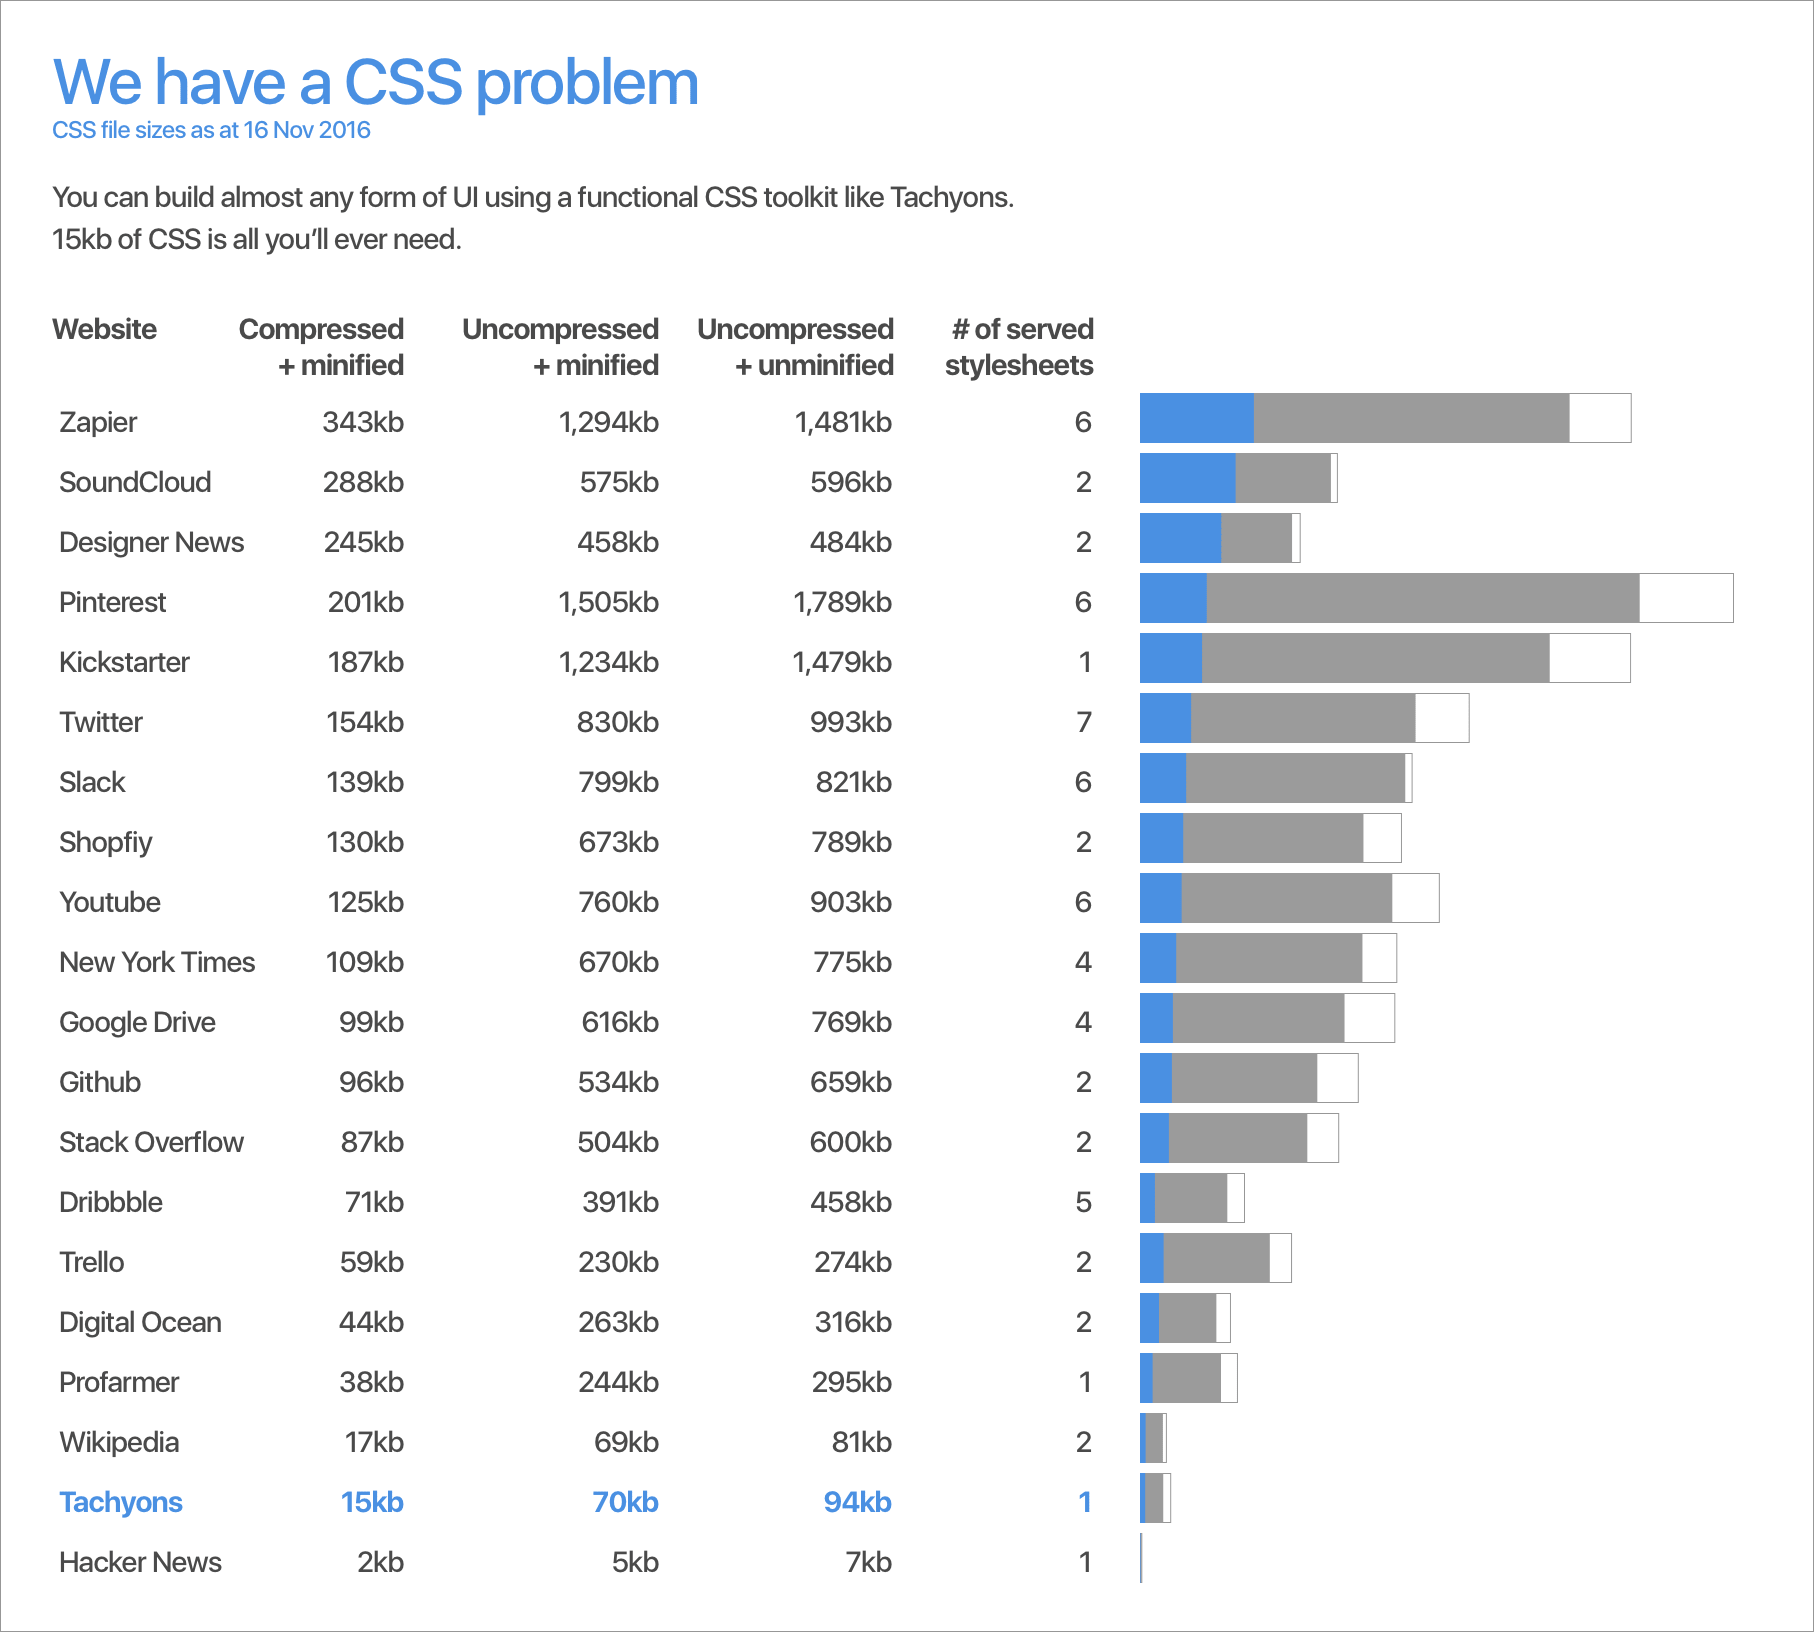 15kb of CSS is all you'll ever need ⚡️